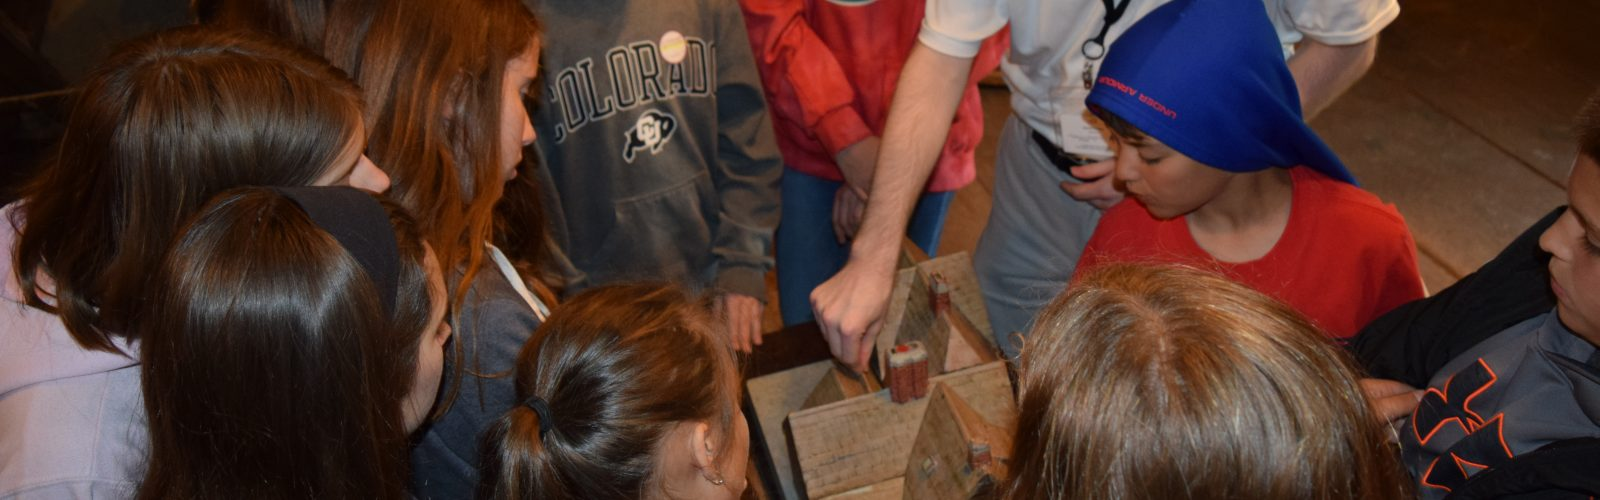 A guide with school-age children at The House of the Seven Gables